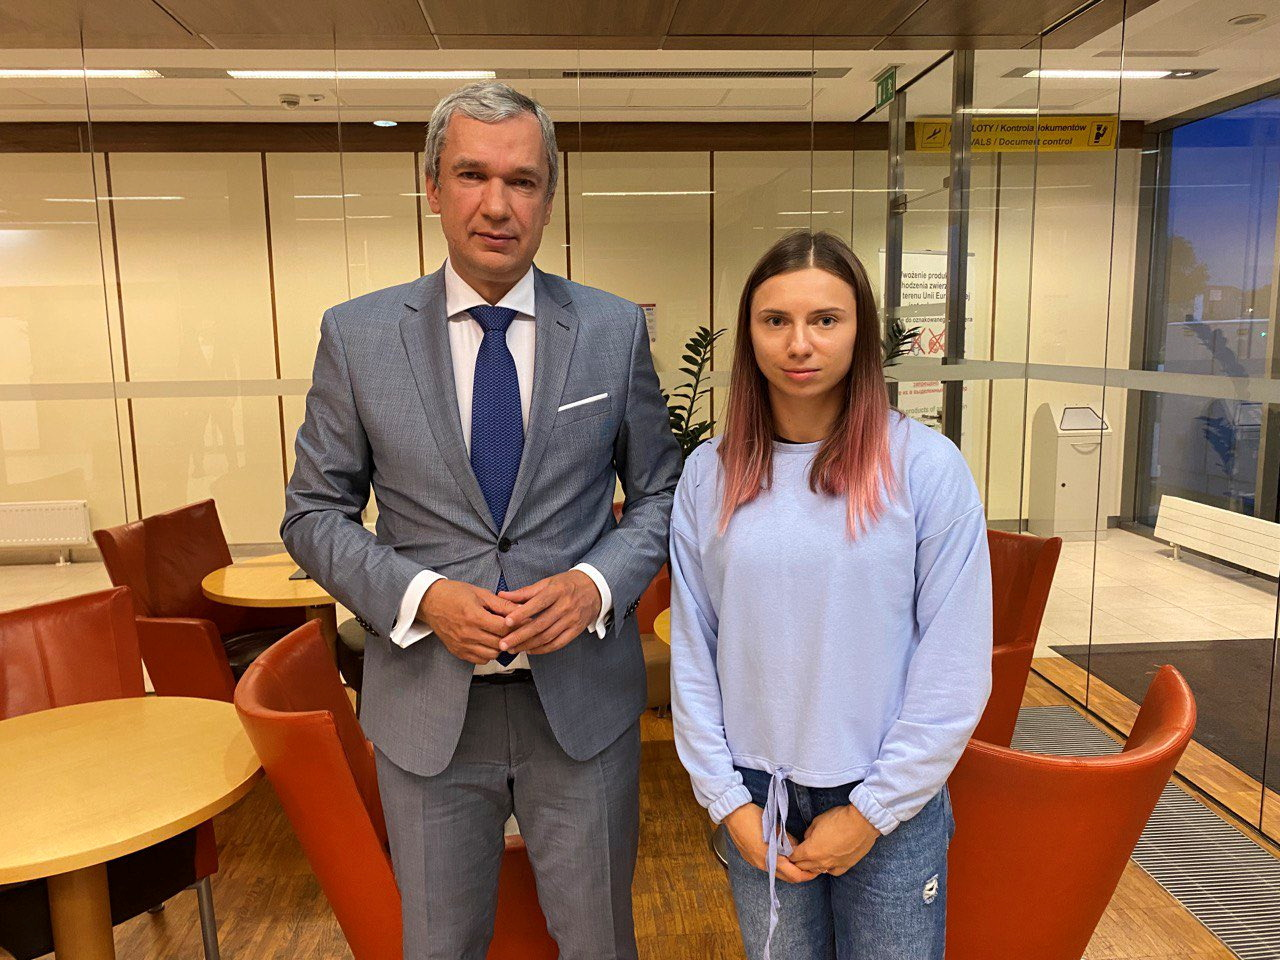 Belarusian opposition politician Pavel Latushka poses with Belarusian sprinter Krystsina Tsimanouskaya, who left the Olympic Games in Tokyo and seeks for asylum in Poland, on her arrival to Warsaw, Poland August 4, 2021. TWITTER/@PavelLatushka via Reuters